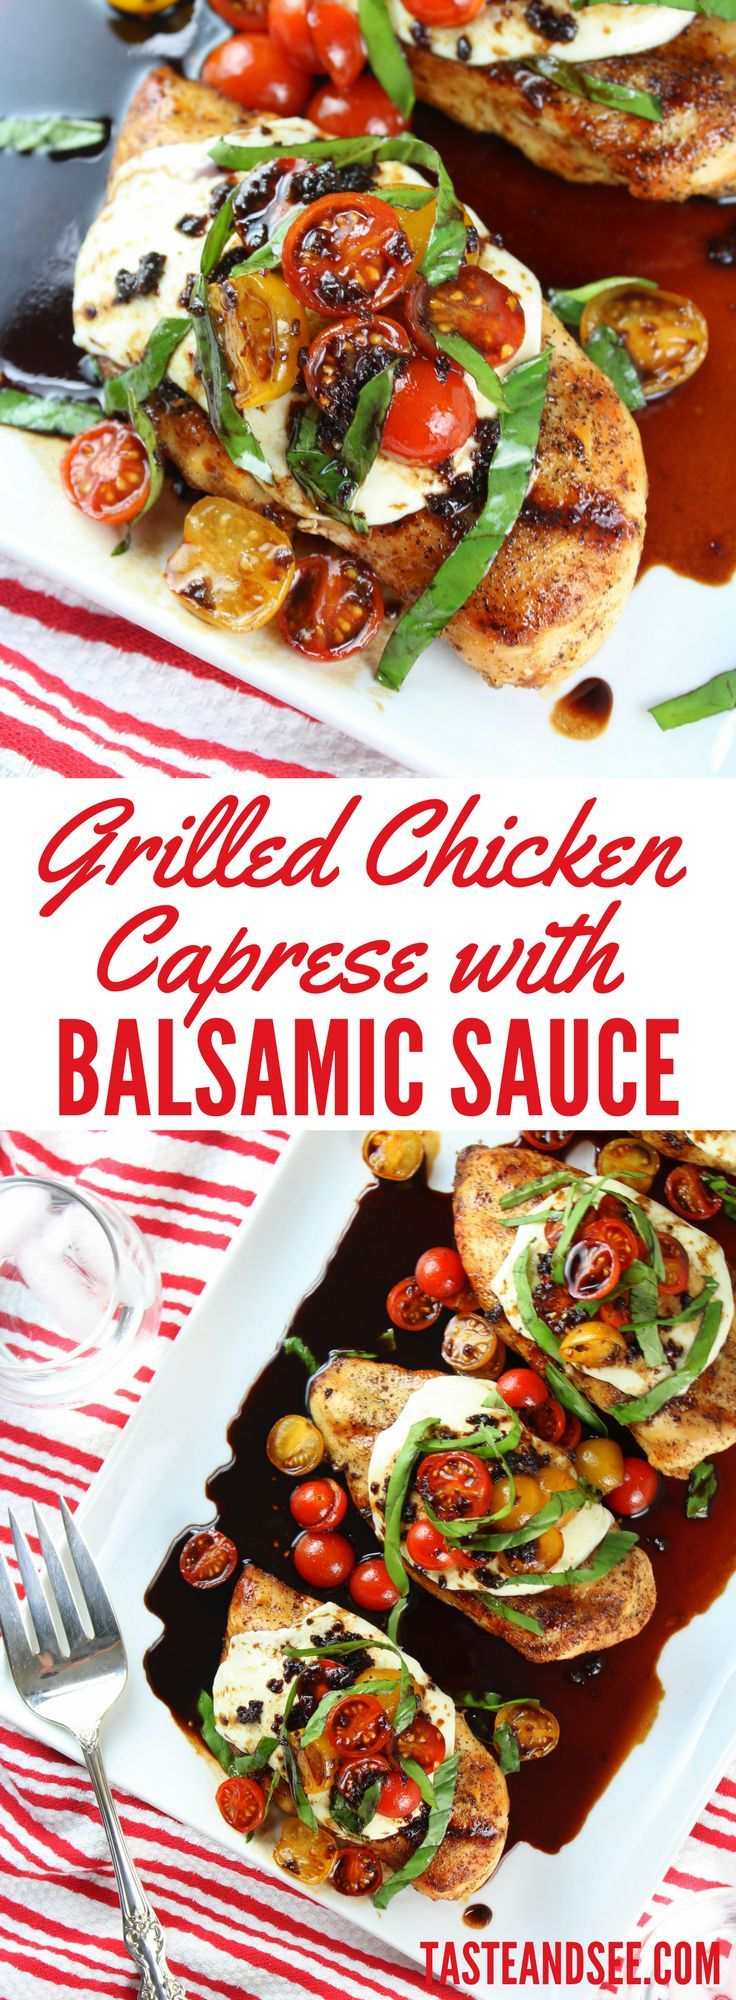 Grilled Chicken Caprese with Balsamic Sauce - an easy, fresh & flavorful summertime dinner!